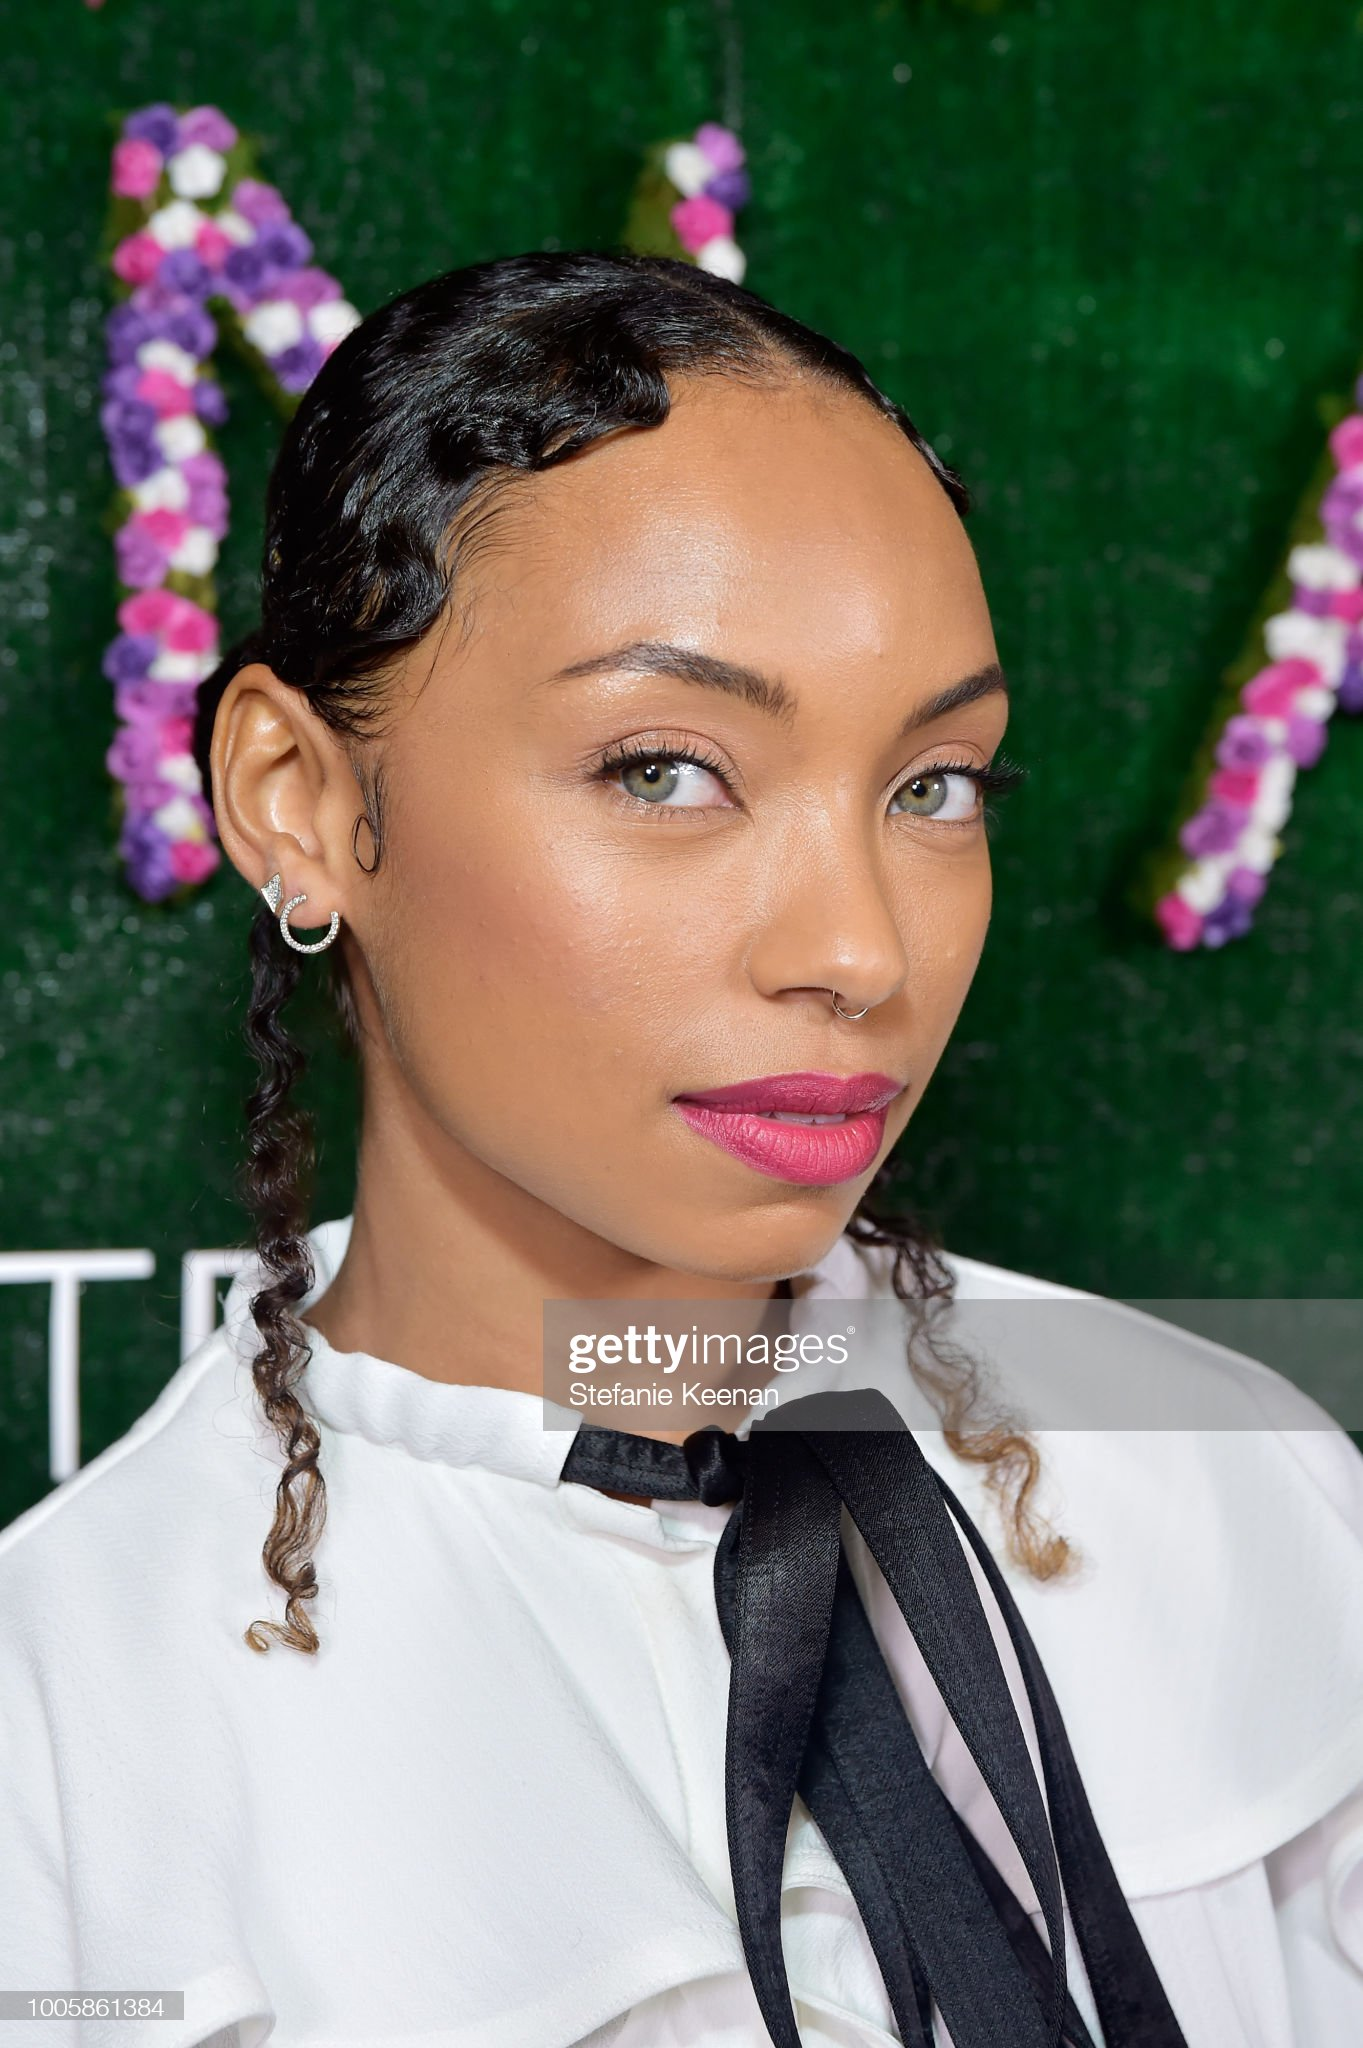 Ojos verdes - Famosas y famosos con los ojos de color VERDE Logan-browning-attends-adina-reyter-friendship-bracelet-launch-at-picture-id1005861384?s=2048x2048